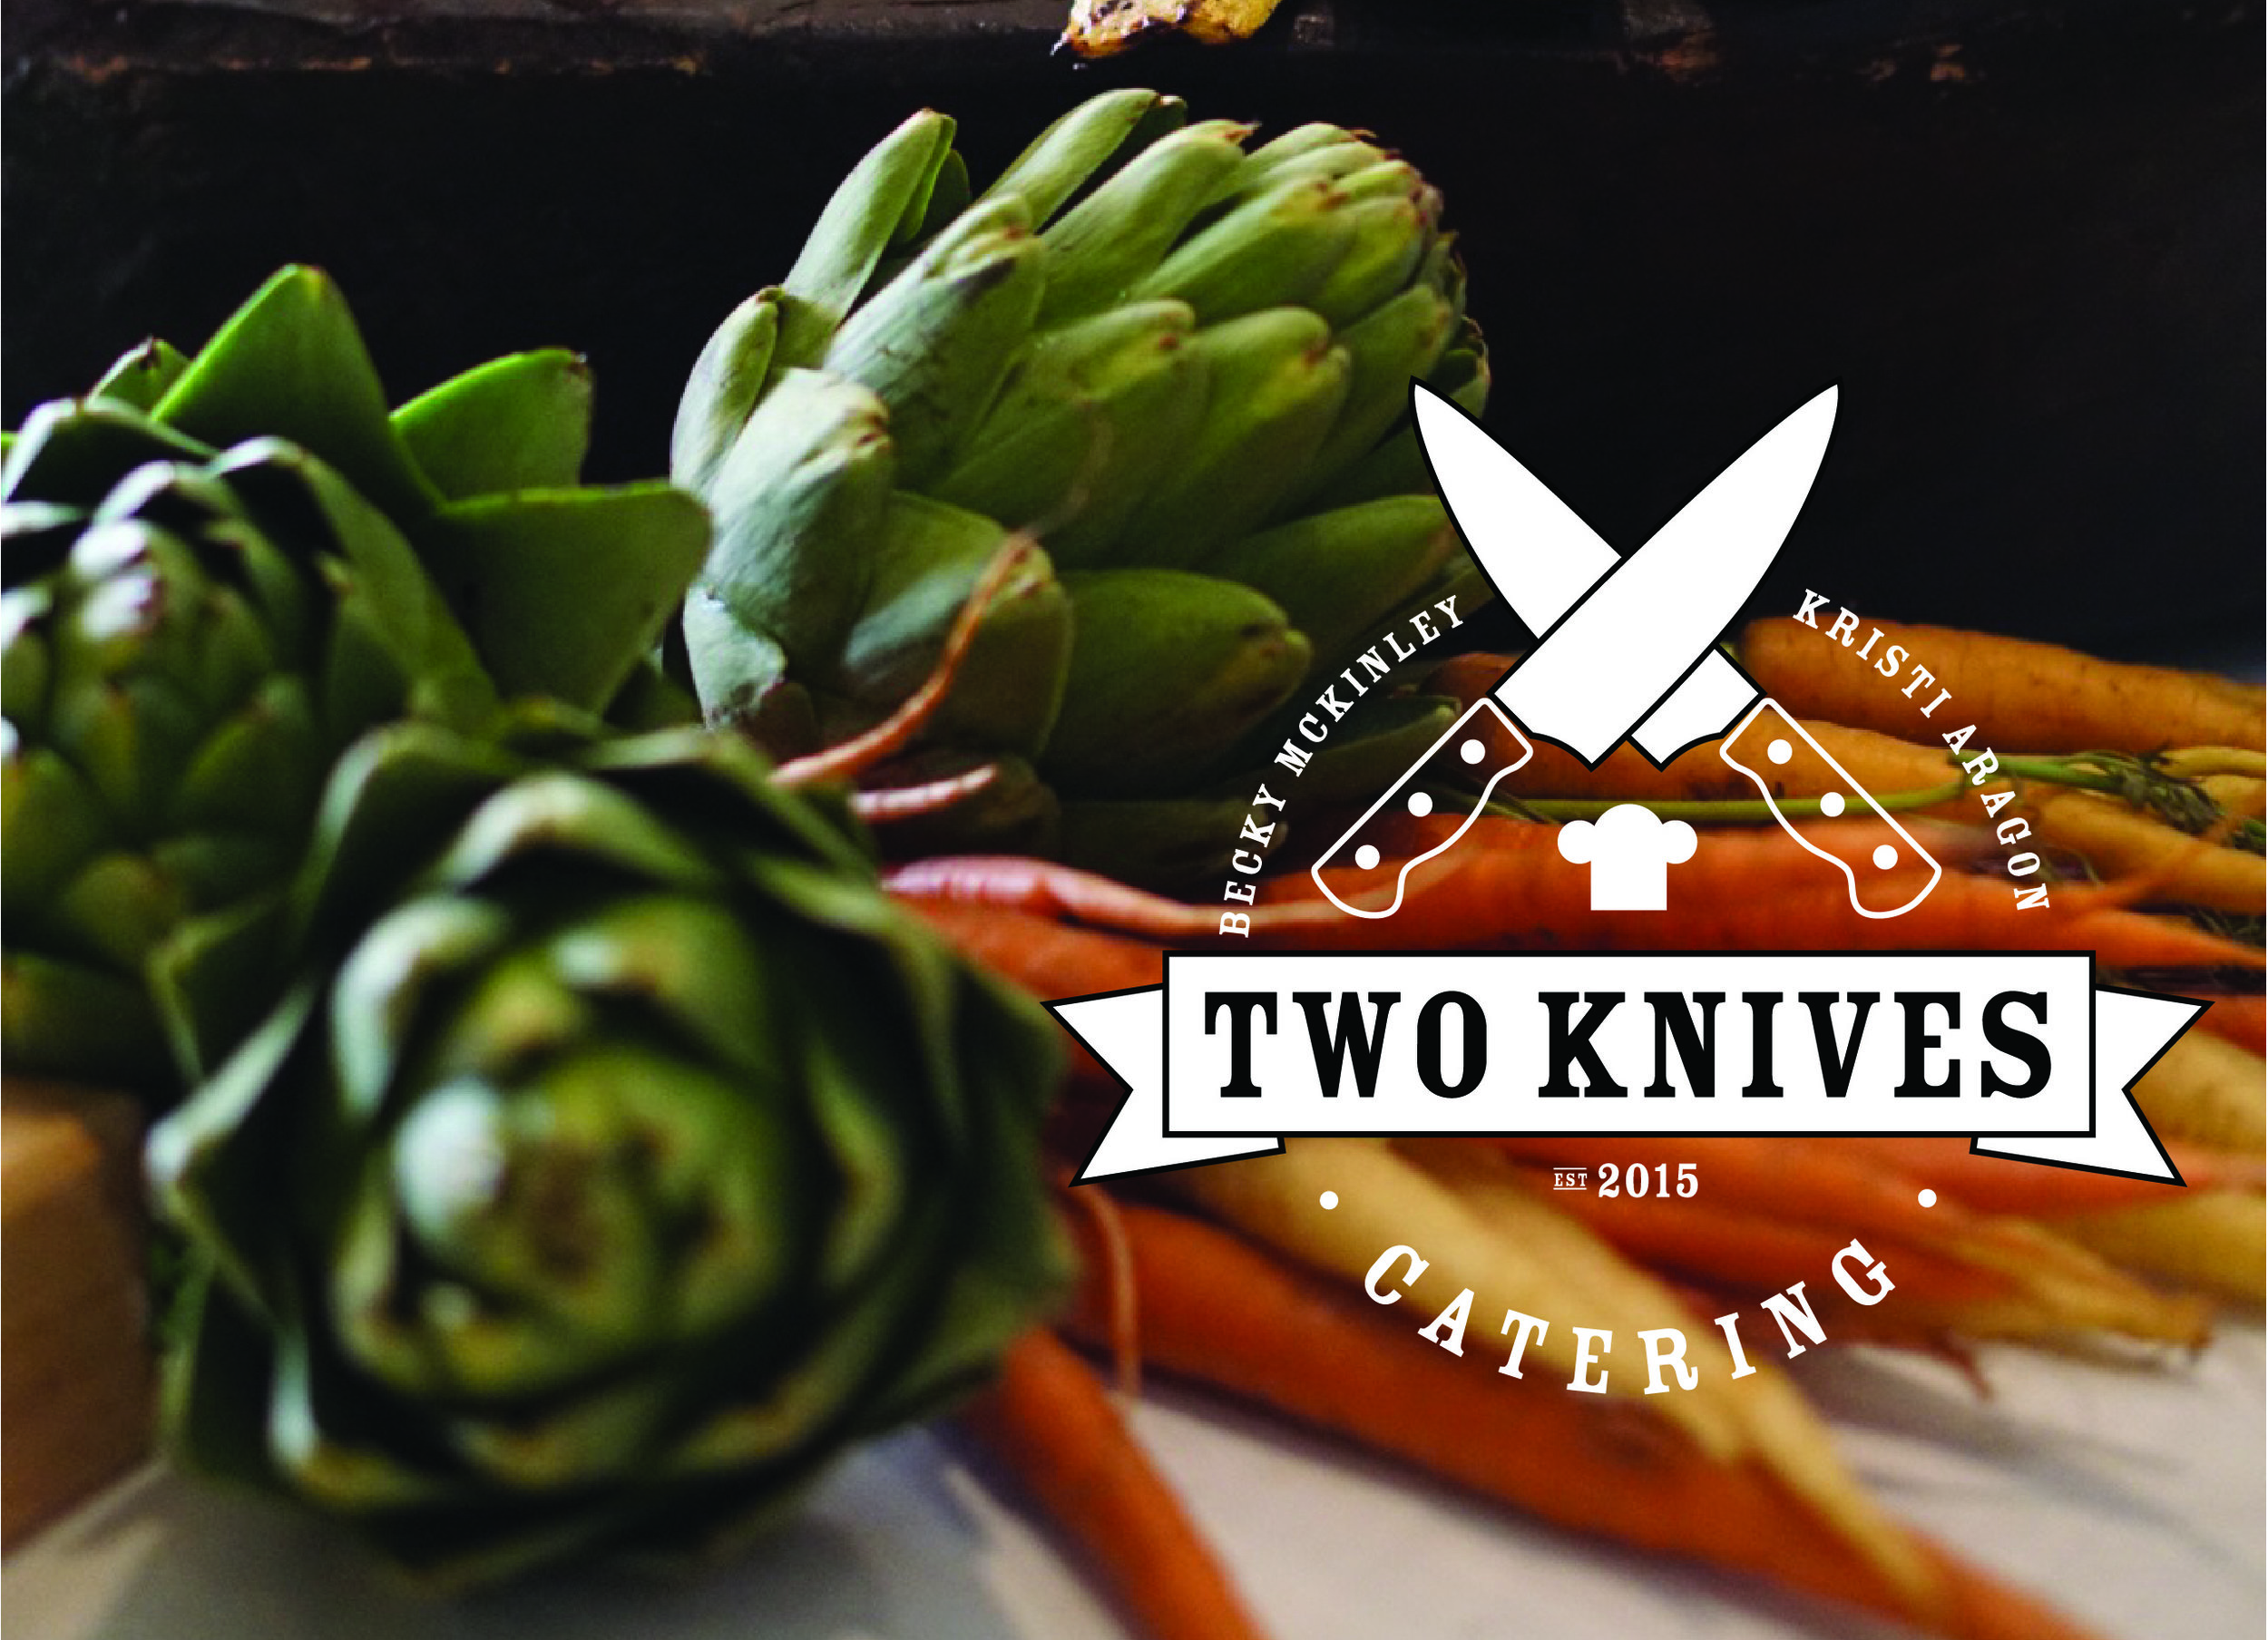 TWO KNIVES CATERING |  BRANDING, WEBSITE DESIGN + DEVELOPMENT, SOCIAL STYLING, EMAIL MARKETING